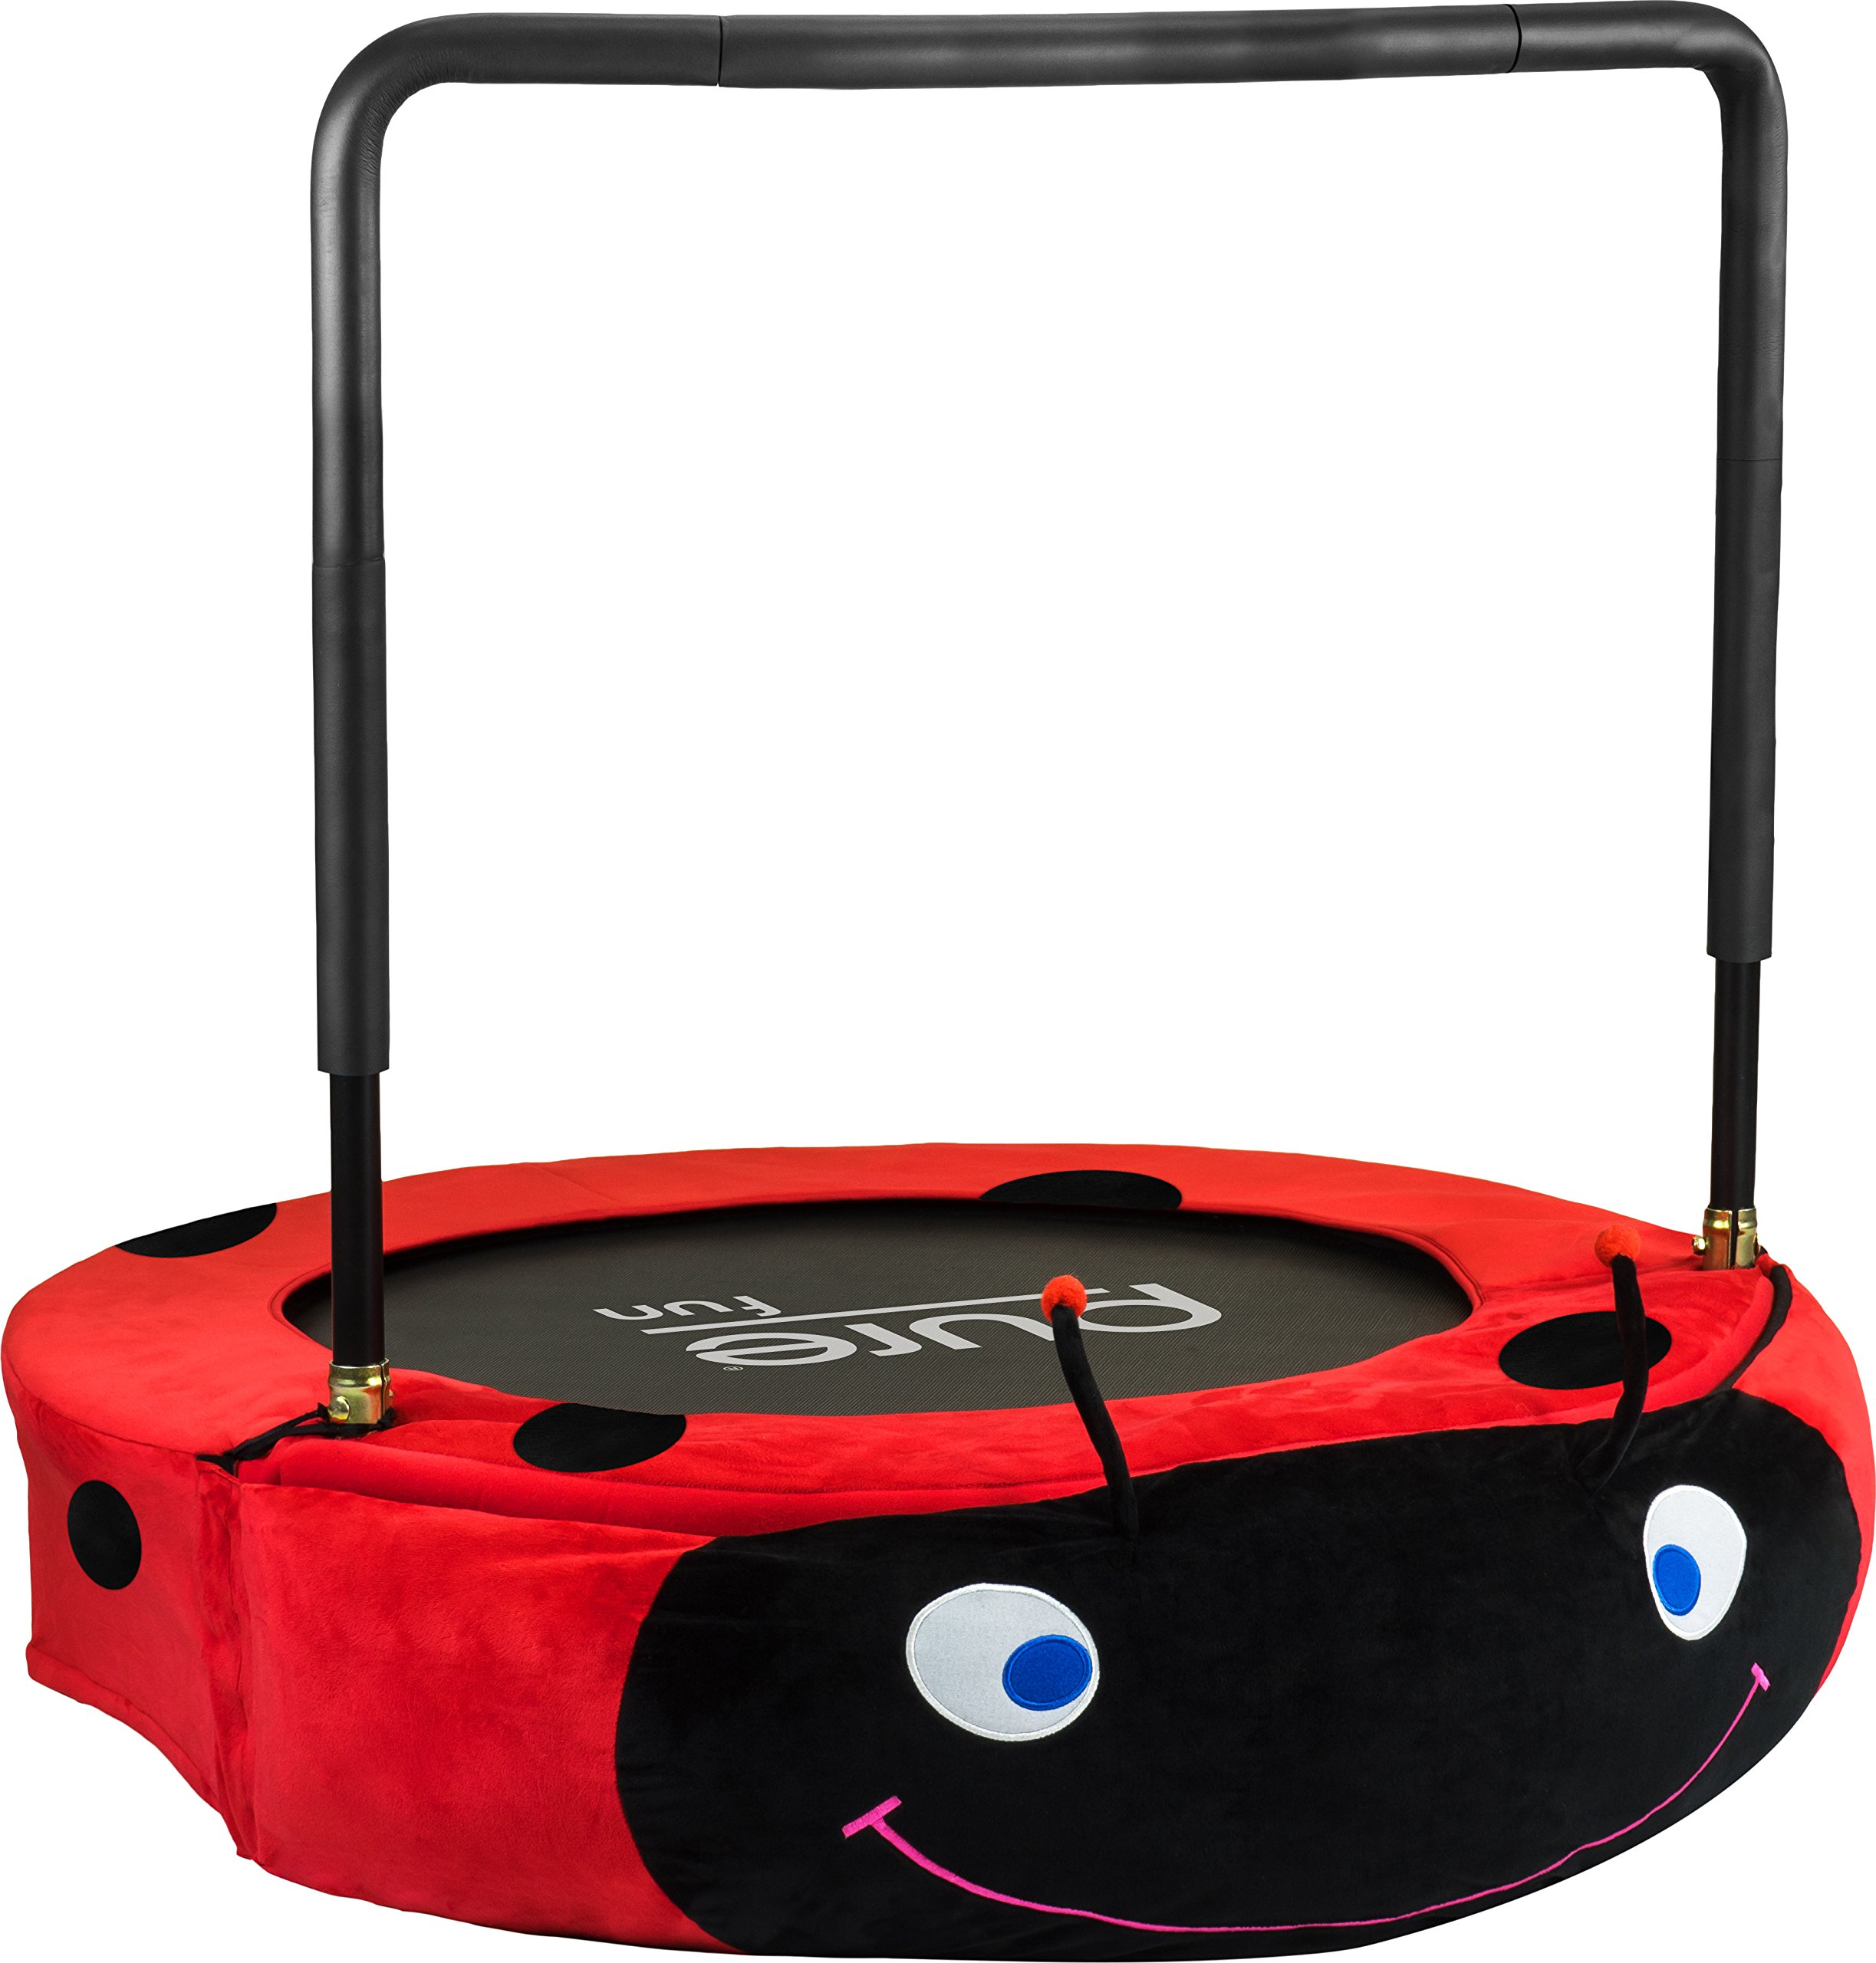 Pure Fun Kids Jumper: 38'' Ladybug Mini Trampoline with Handrail, Youth Ages 4 to 10